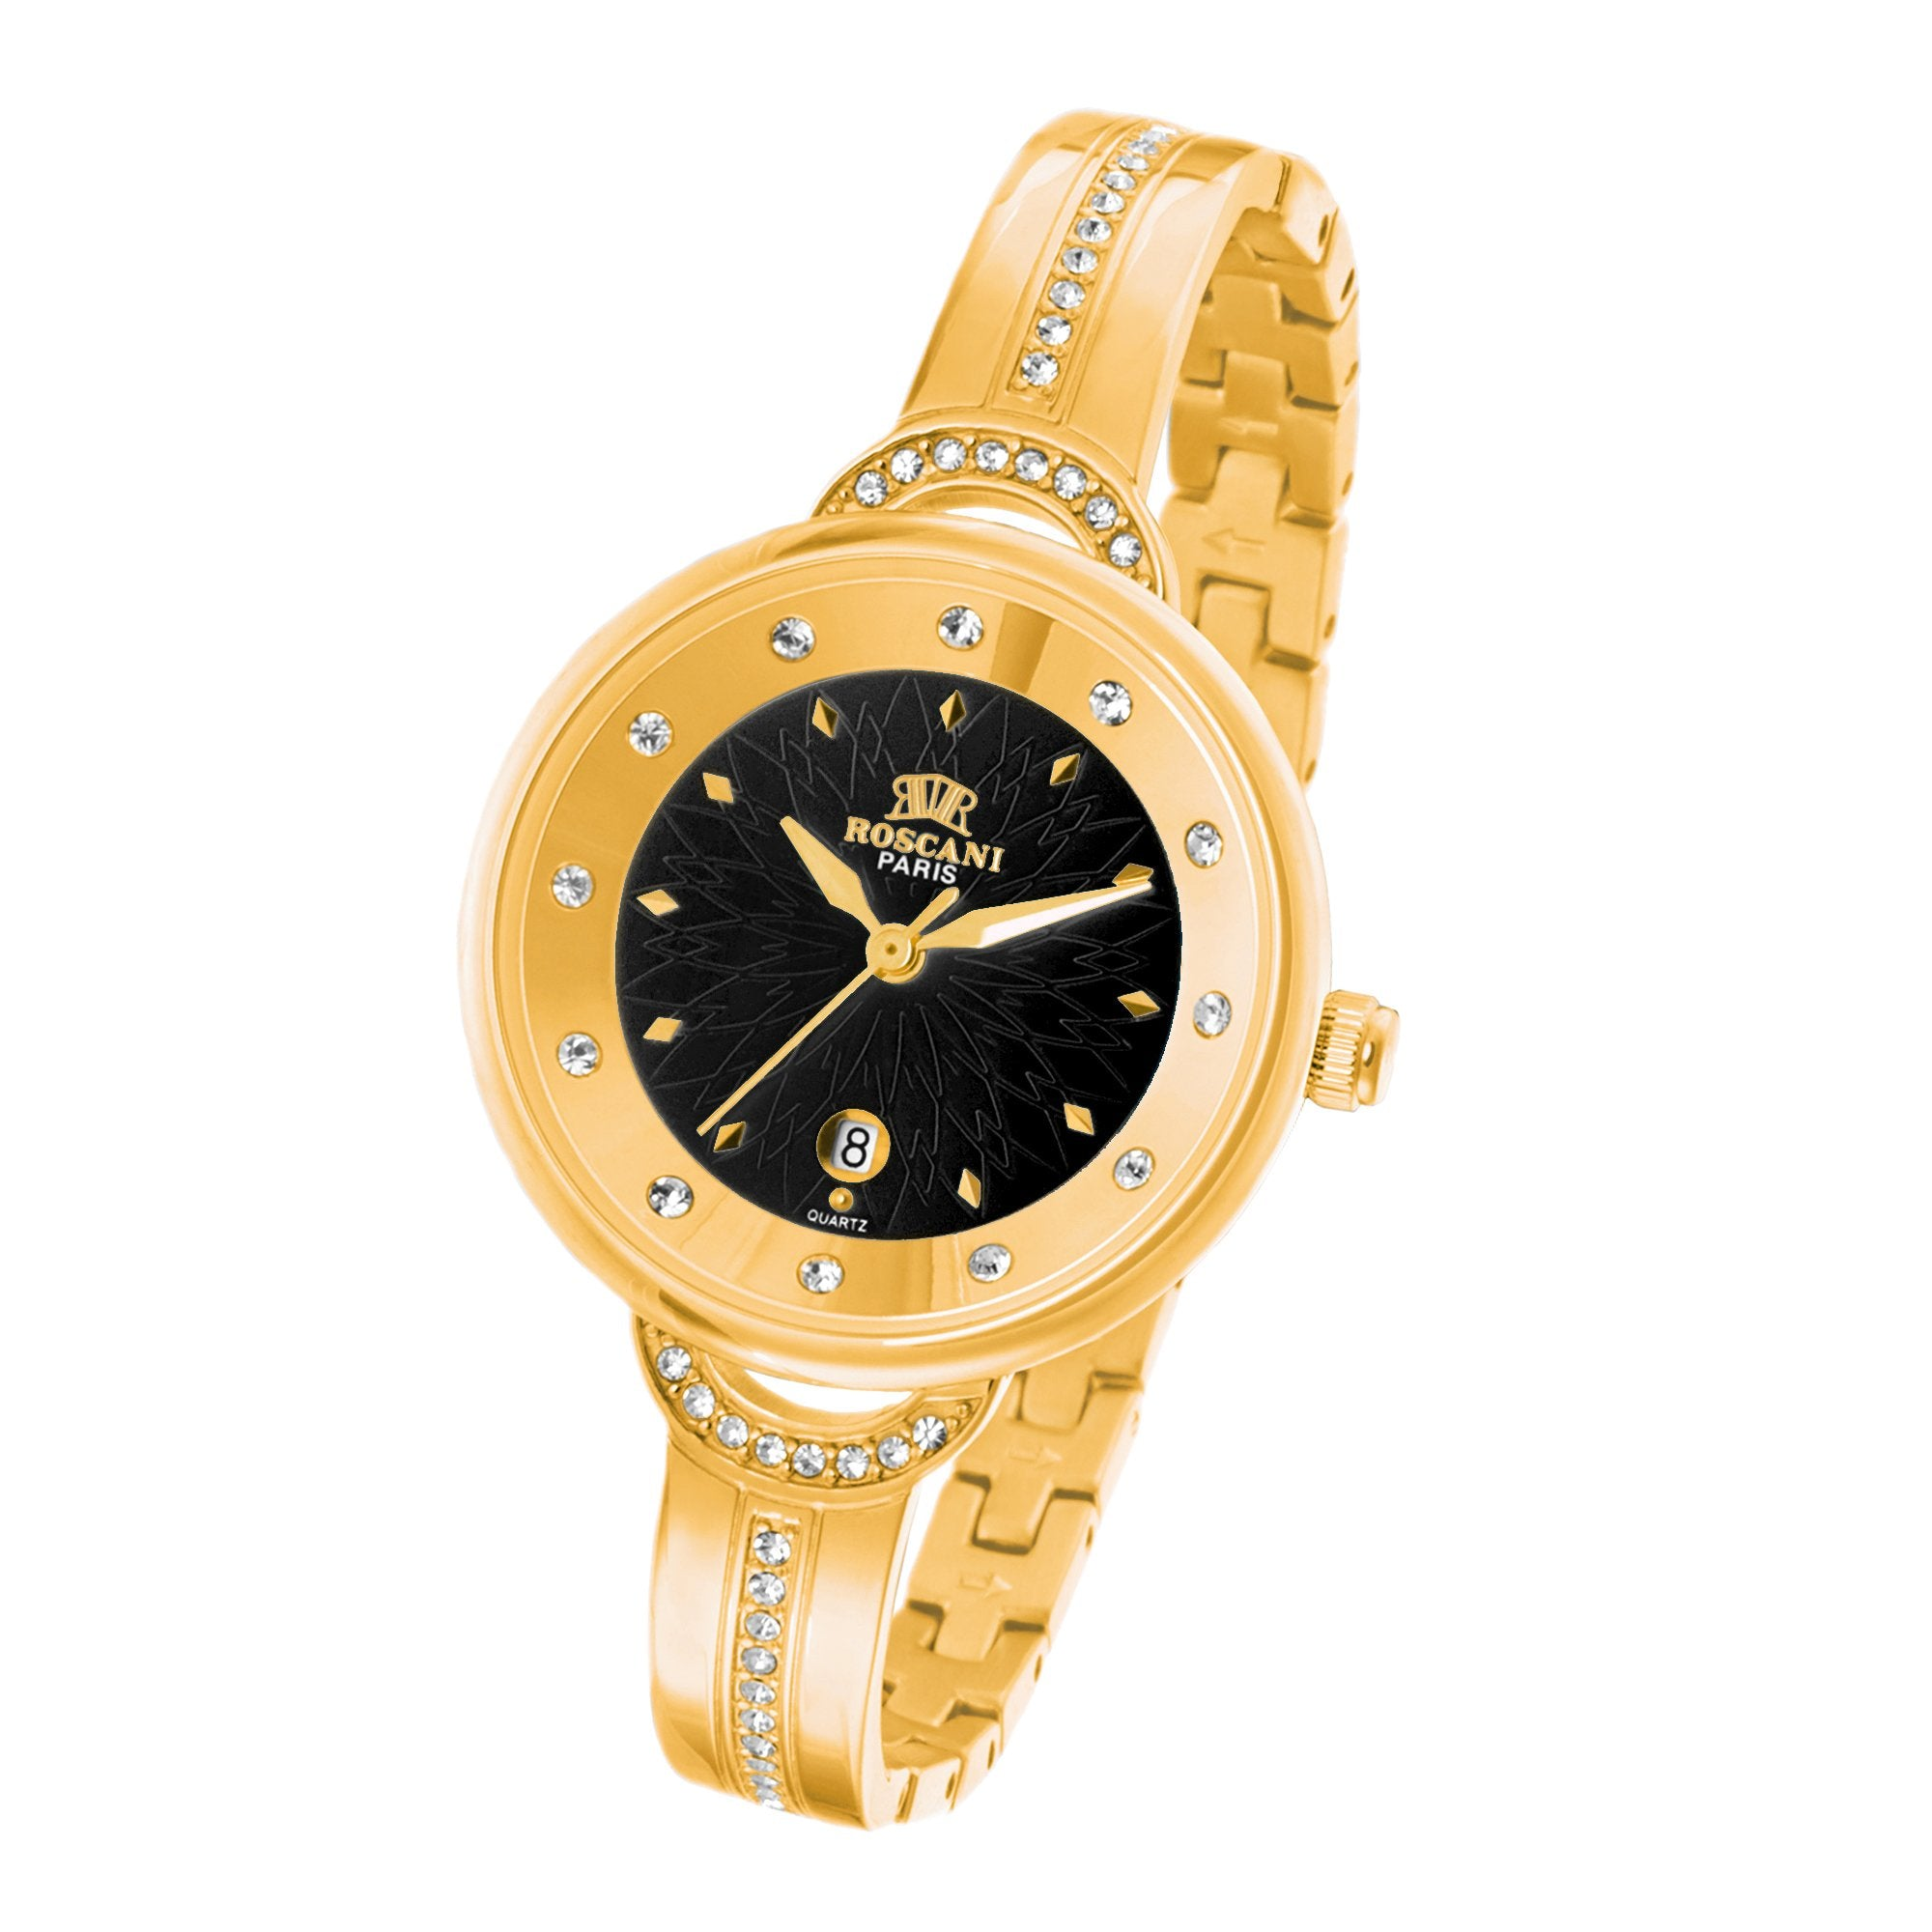 watch mag datejust popular masters fashion we classics this enduring is elegance pioneer in variations luxe rolex and business been for from lady one love theme on the have living most decades of watches beauty minute